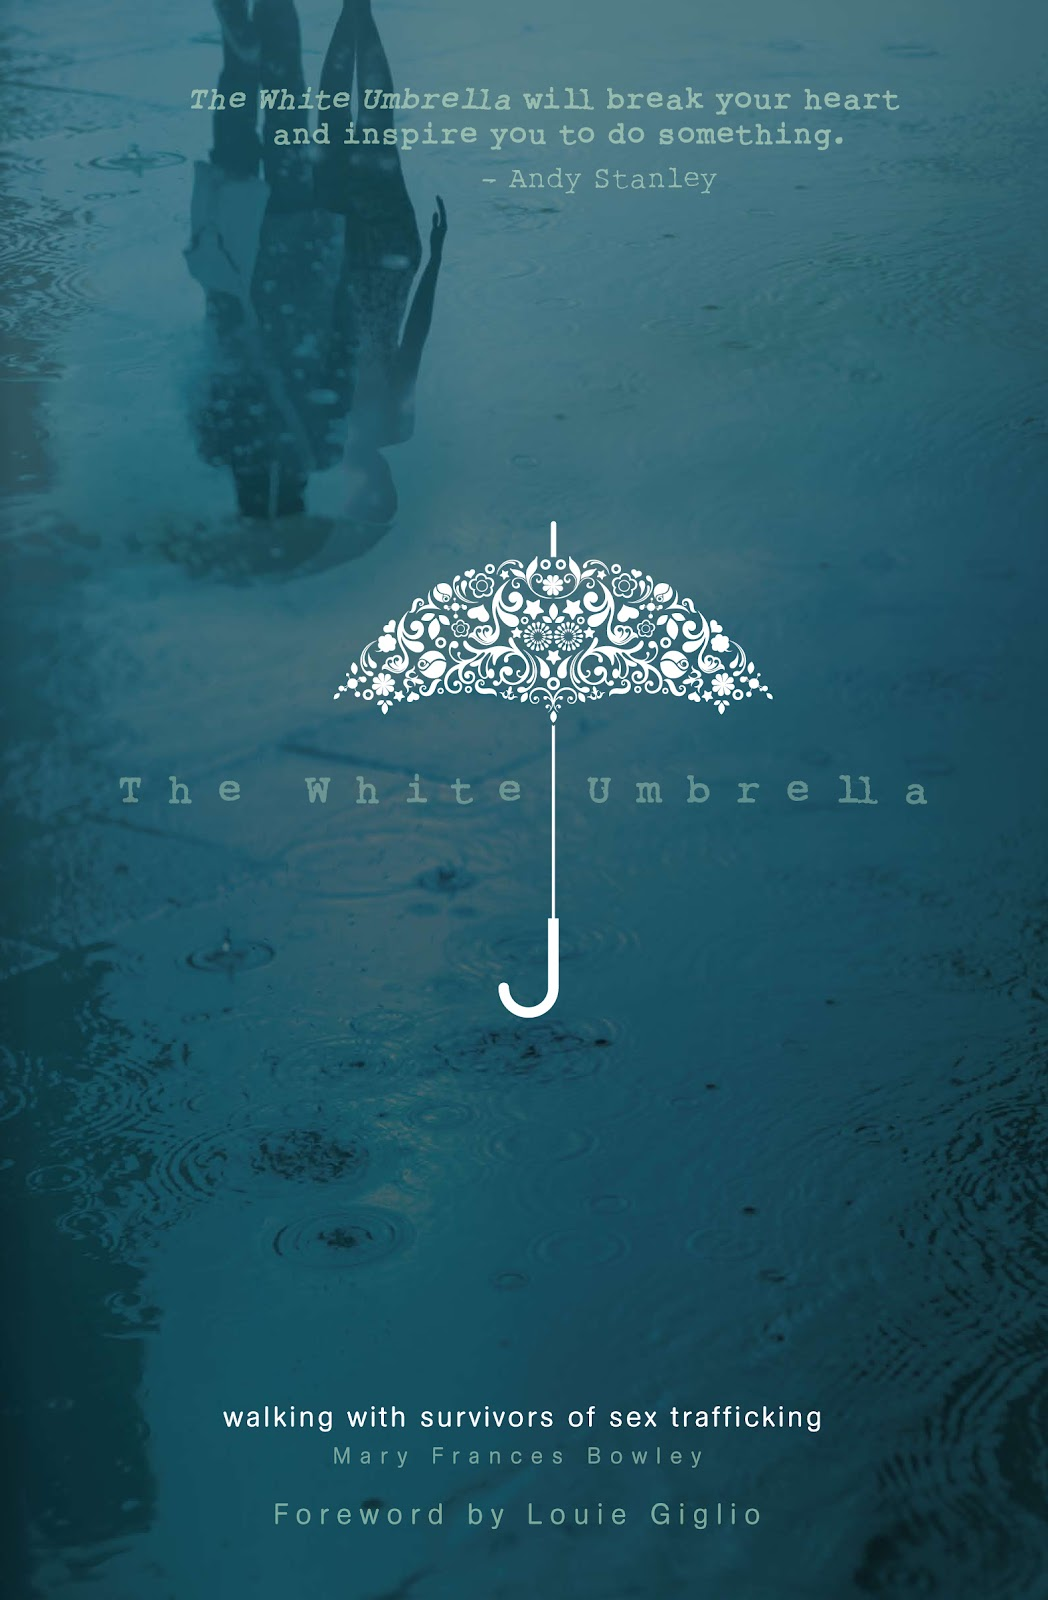 13 Quotes From The White Umbrella